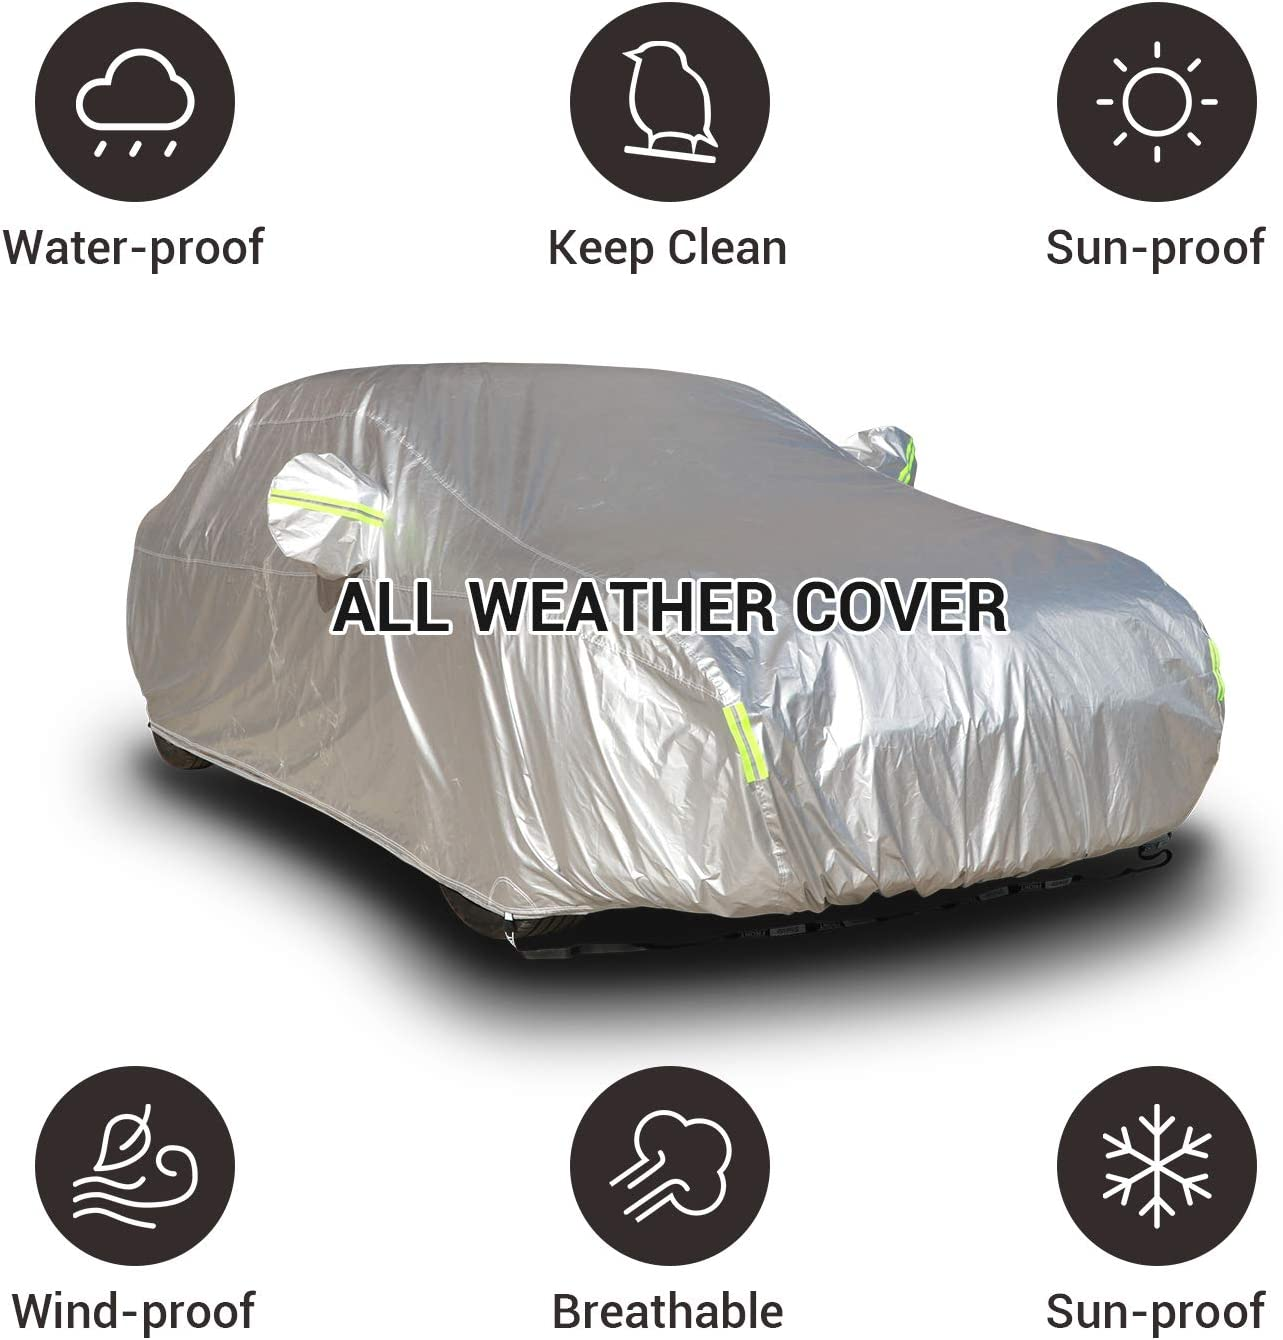 Shield Waterproof CAR Cover H-Duty Fiat SEICENTO 1997-2010 Cotton Lined-Size S